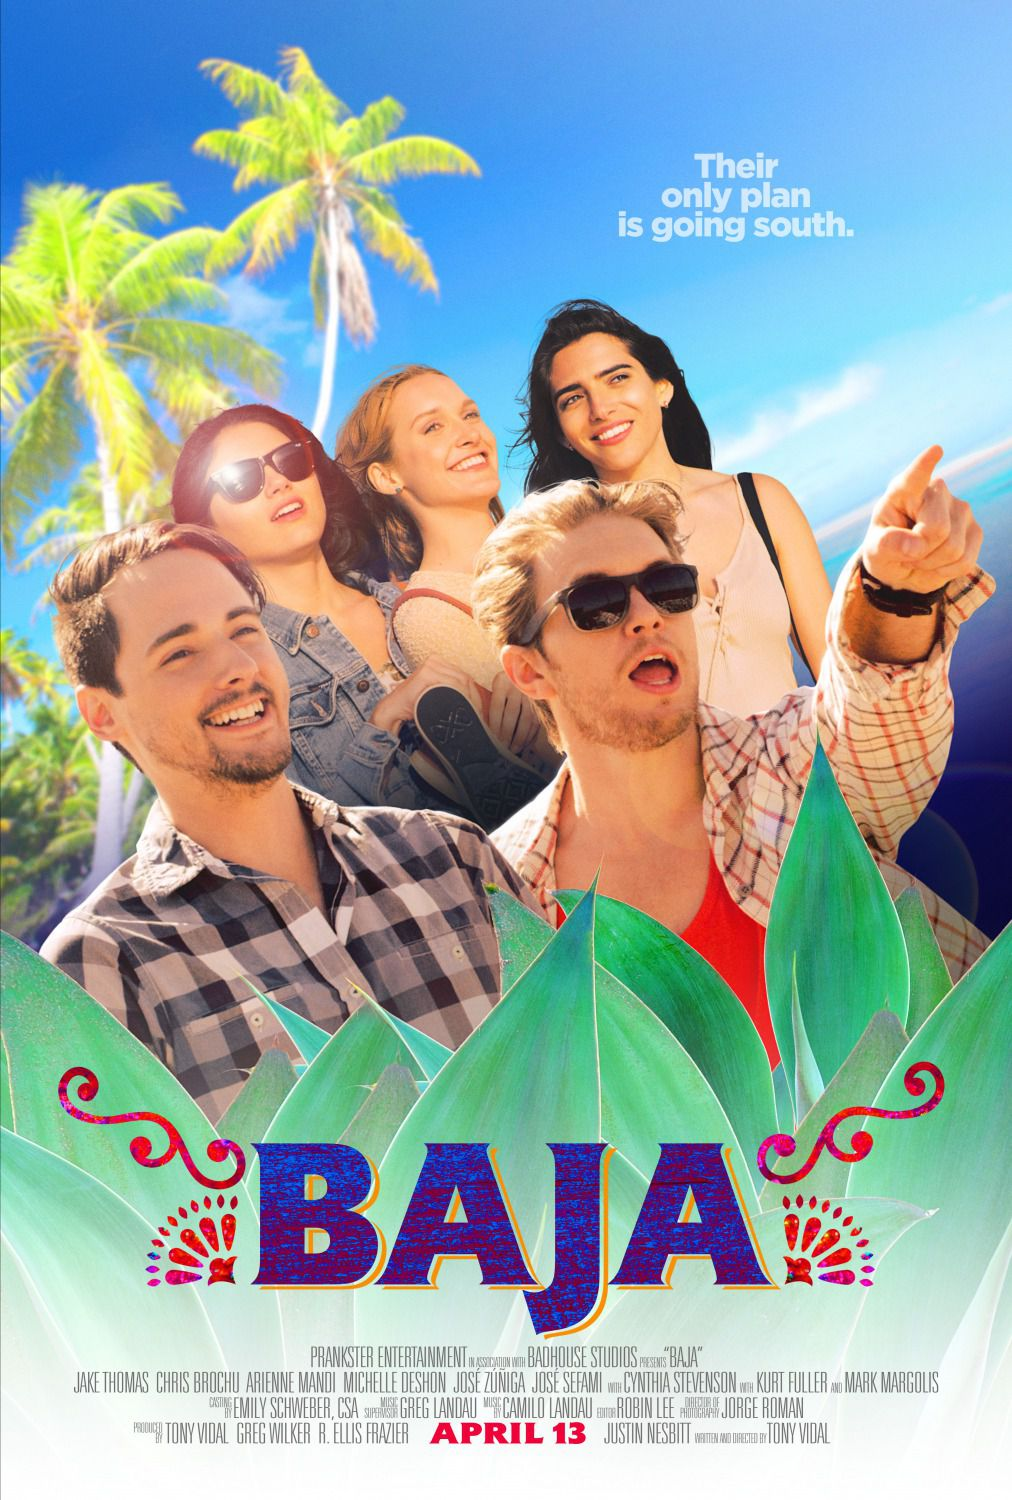 Baja (2018) - Their only plan is going south - film poster